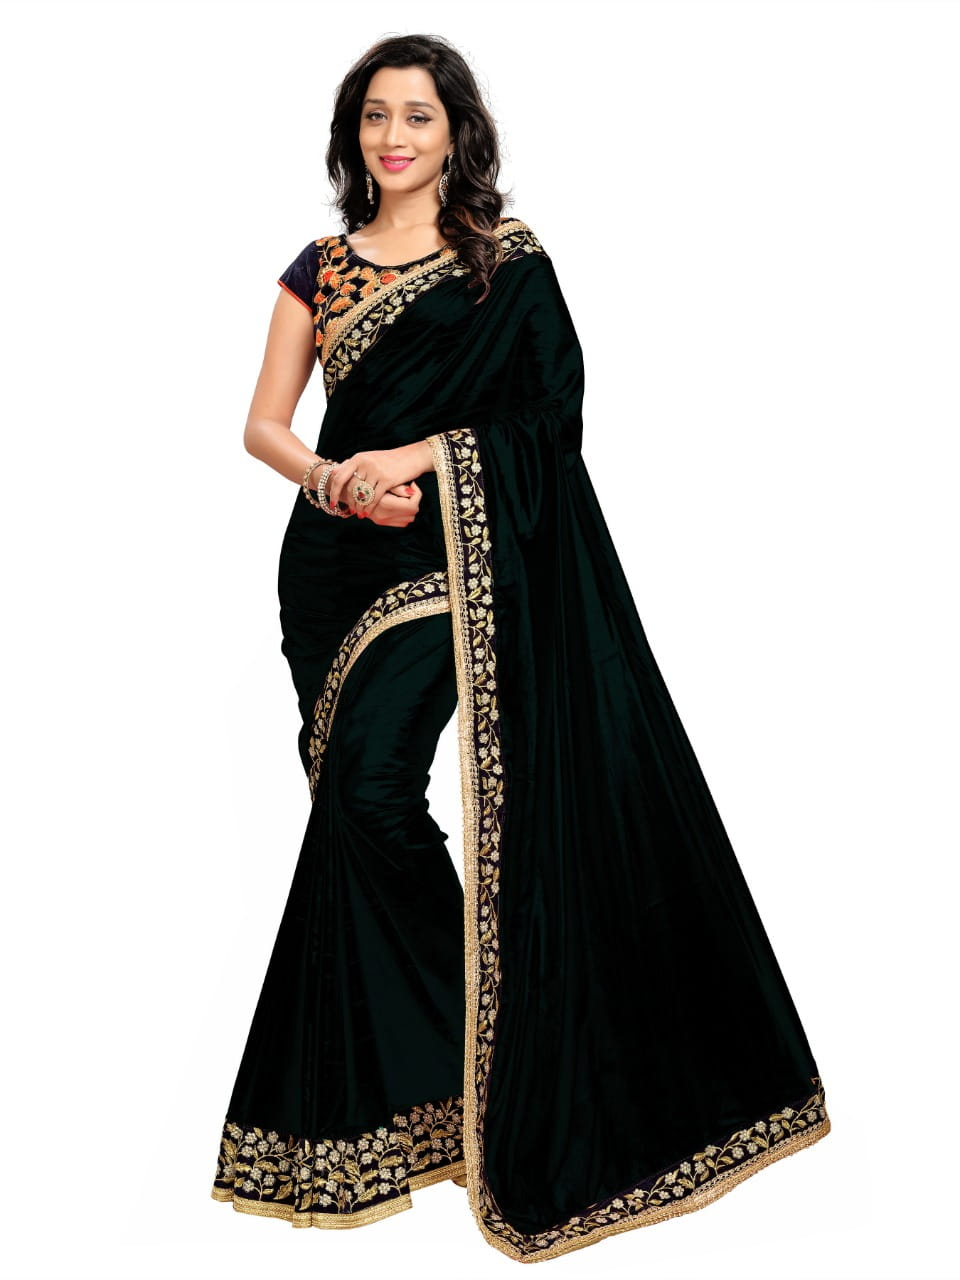 Adorable Black Color Function Wear Embroidered Work Paper Silk Designer Saree Blouse For Ladies